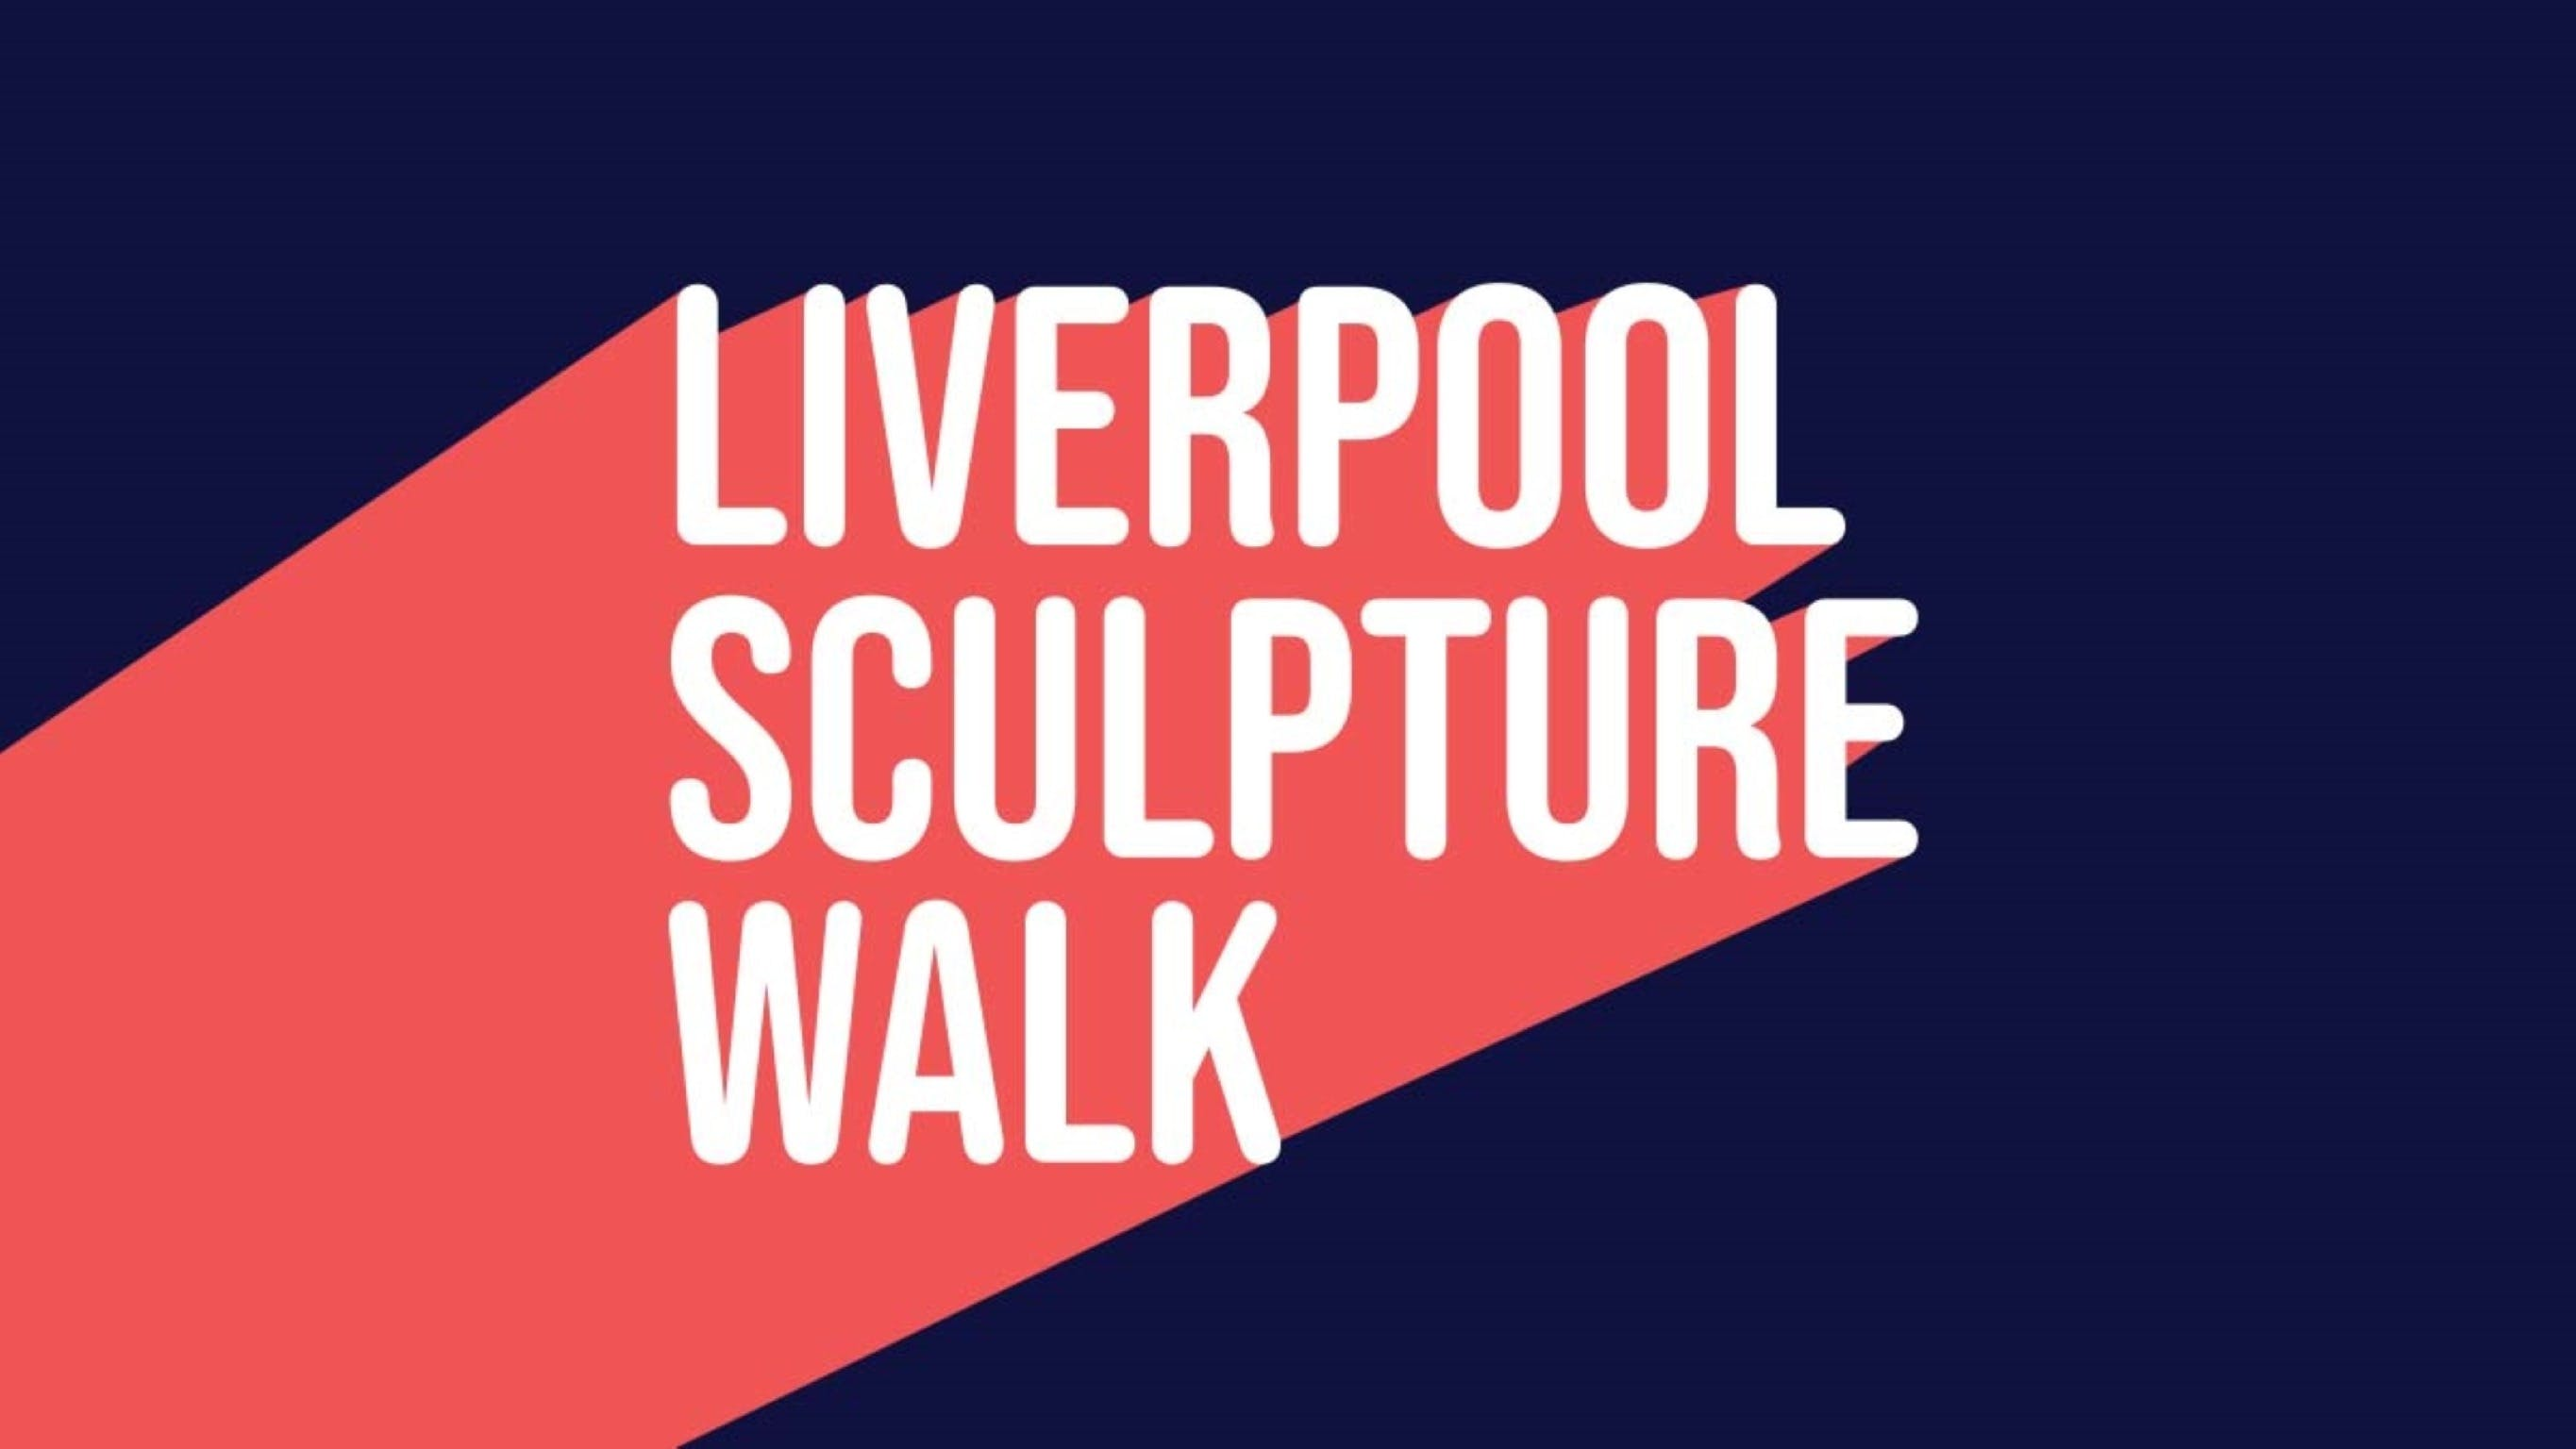 Liverpool Sculpture Walk - VIC Tourism